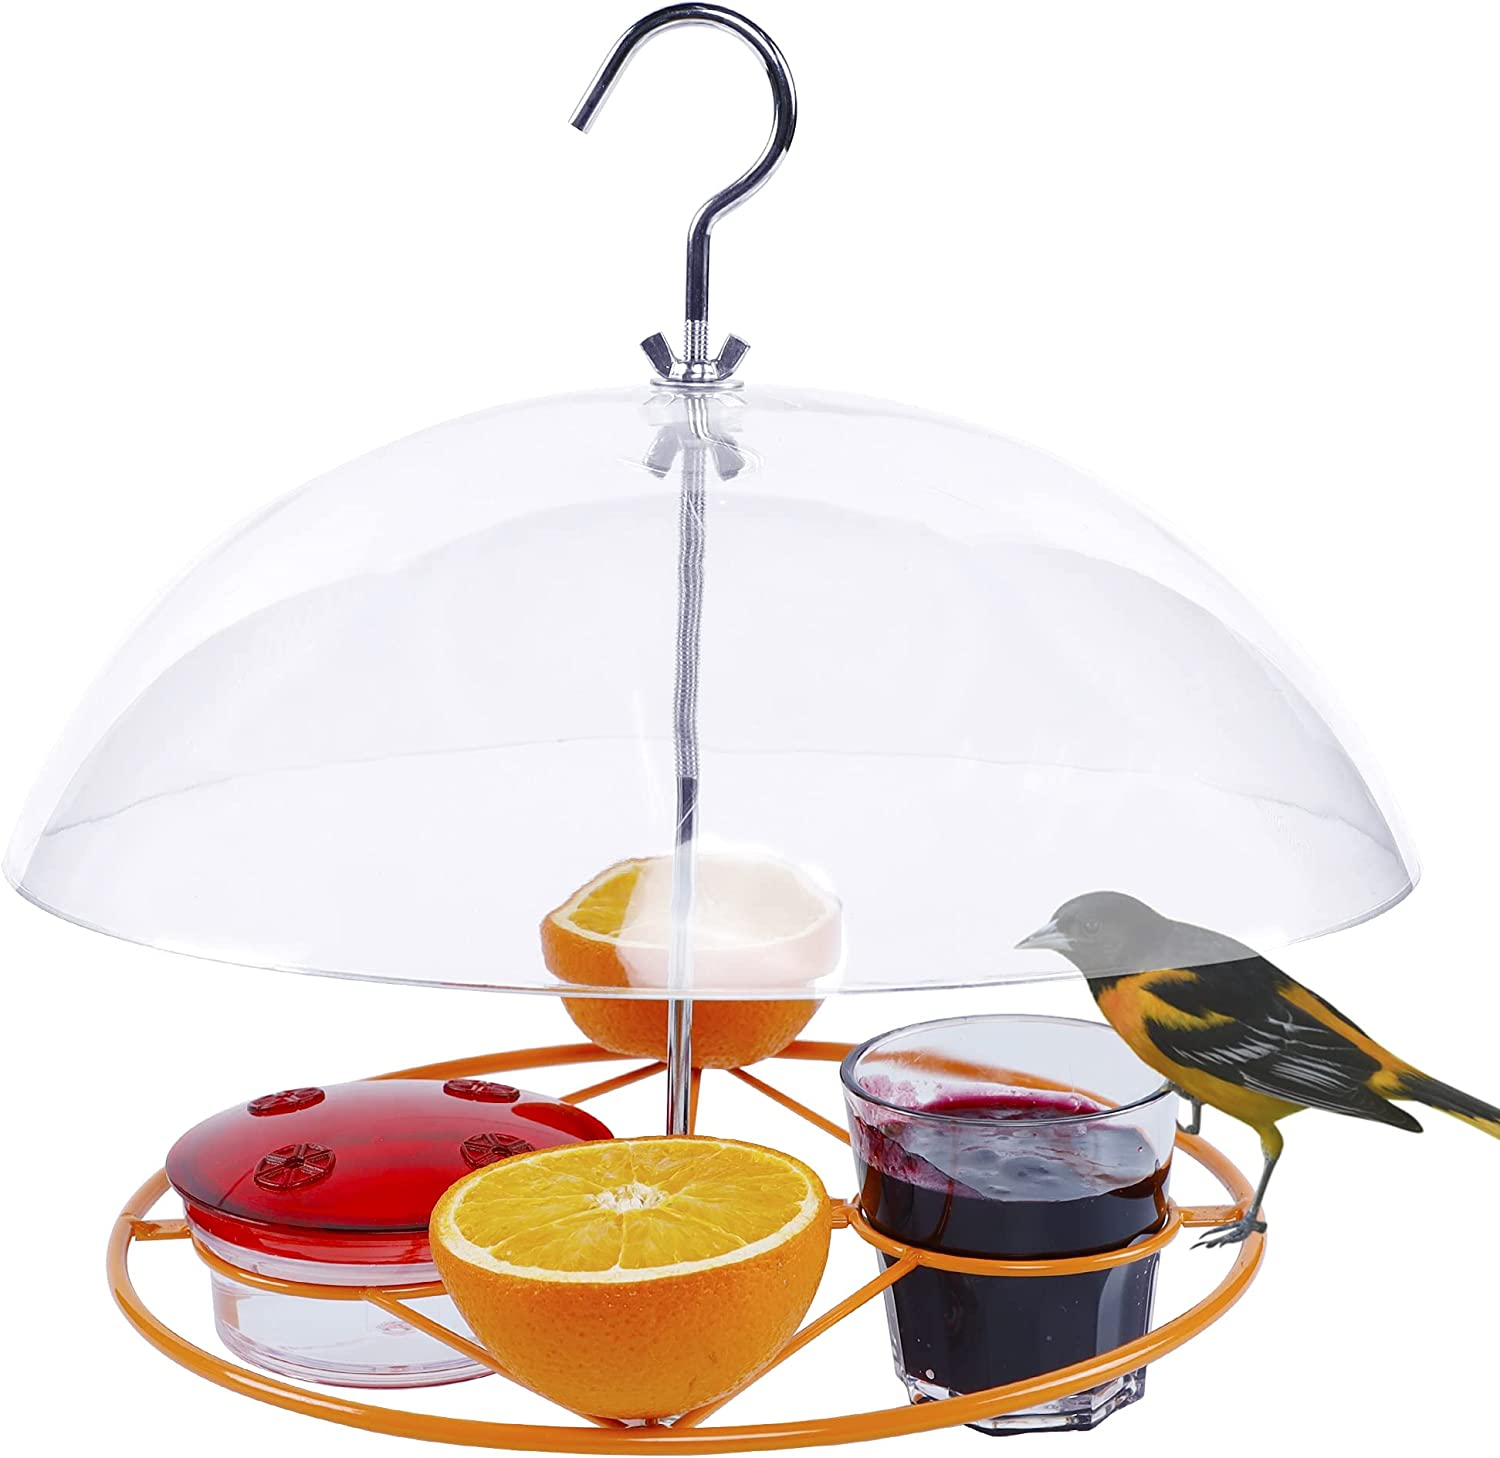 Twinkle Star Oriole Bird Feeder, 3 Types Food, Orange Halves Fruit, Drinking Nectar and Grape Jelly Hummingbird Feeders, Outdoor Metal Hanging Adjustable Dome Proof Squirrel and Larger Birds Baffle